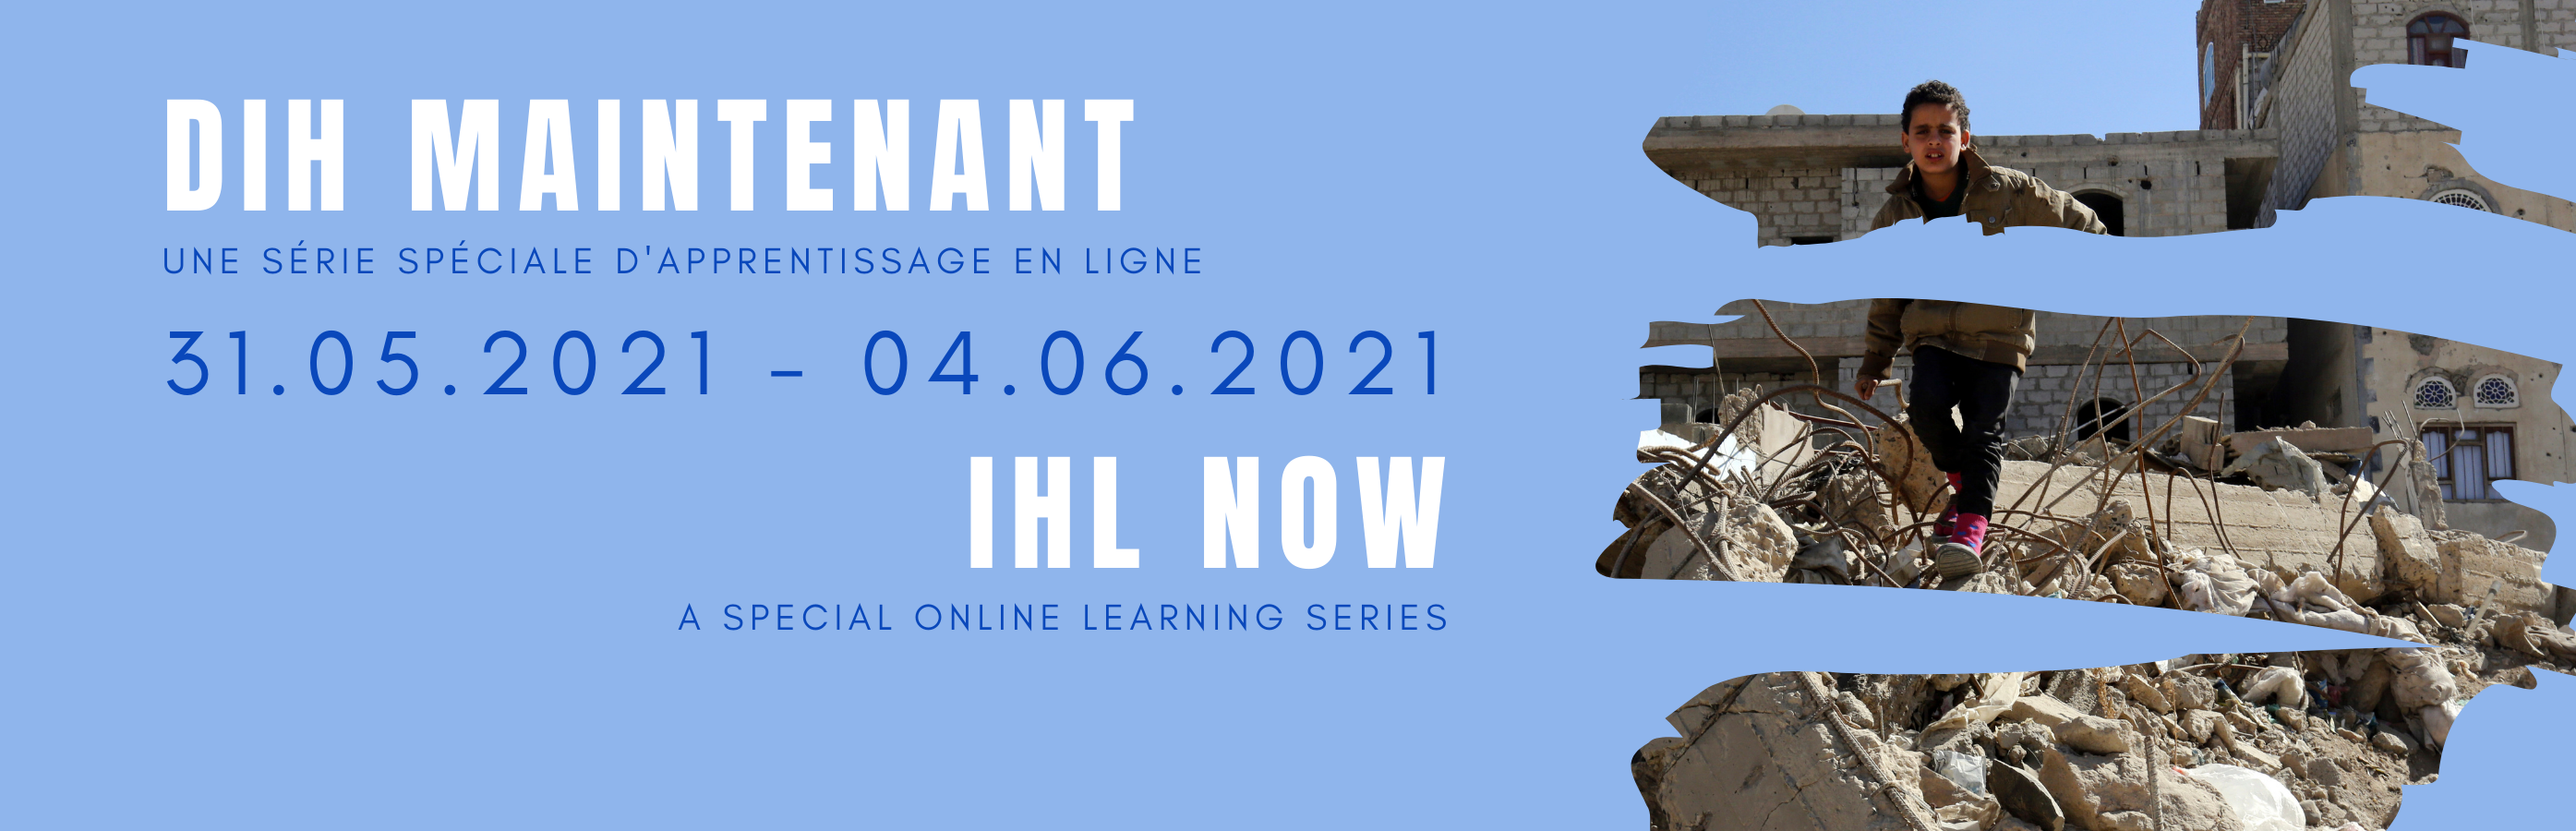 IHL NOW 2021: A Special Online Learning Series